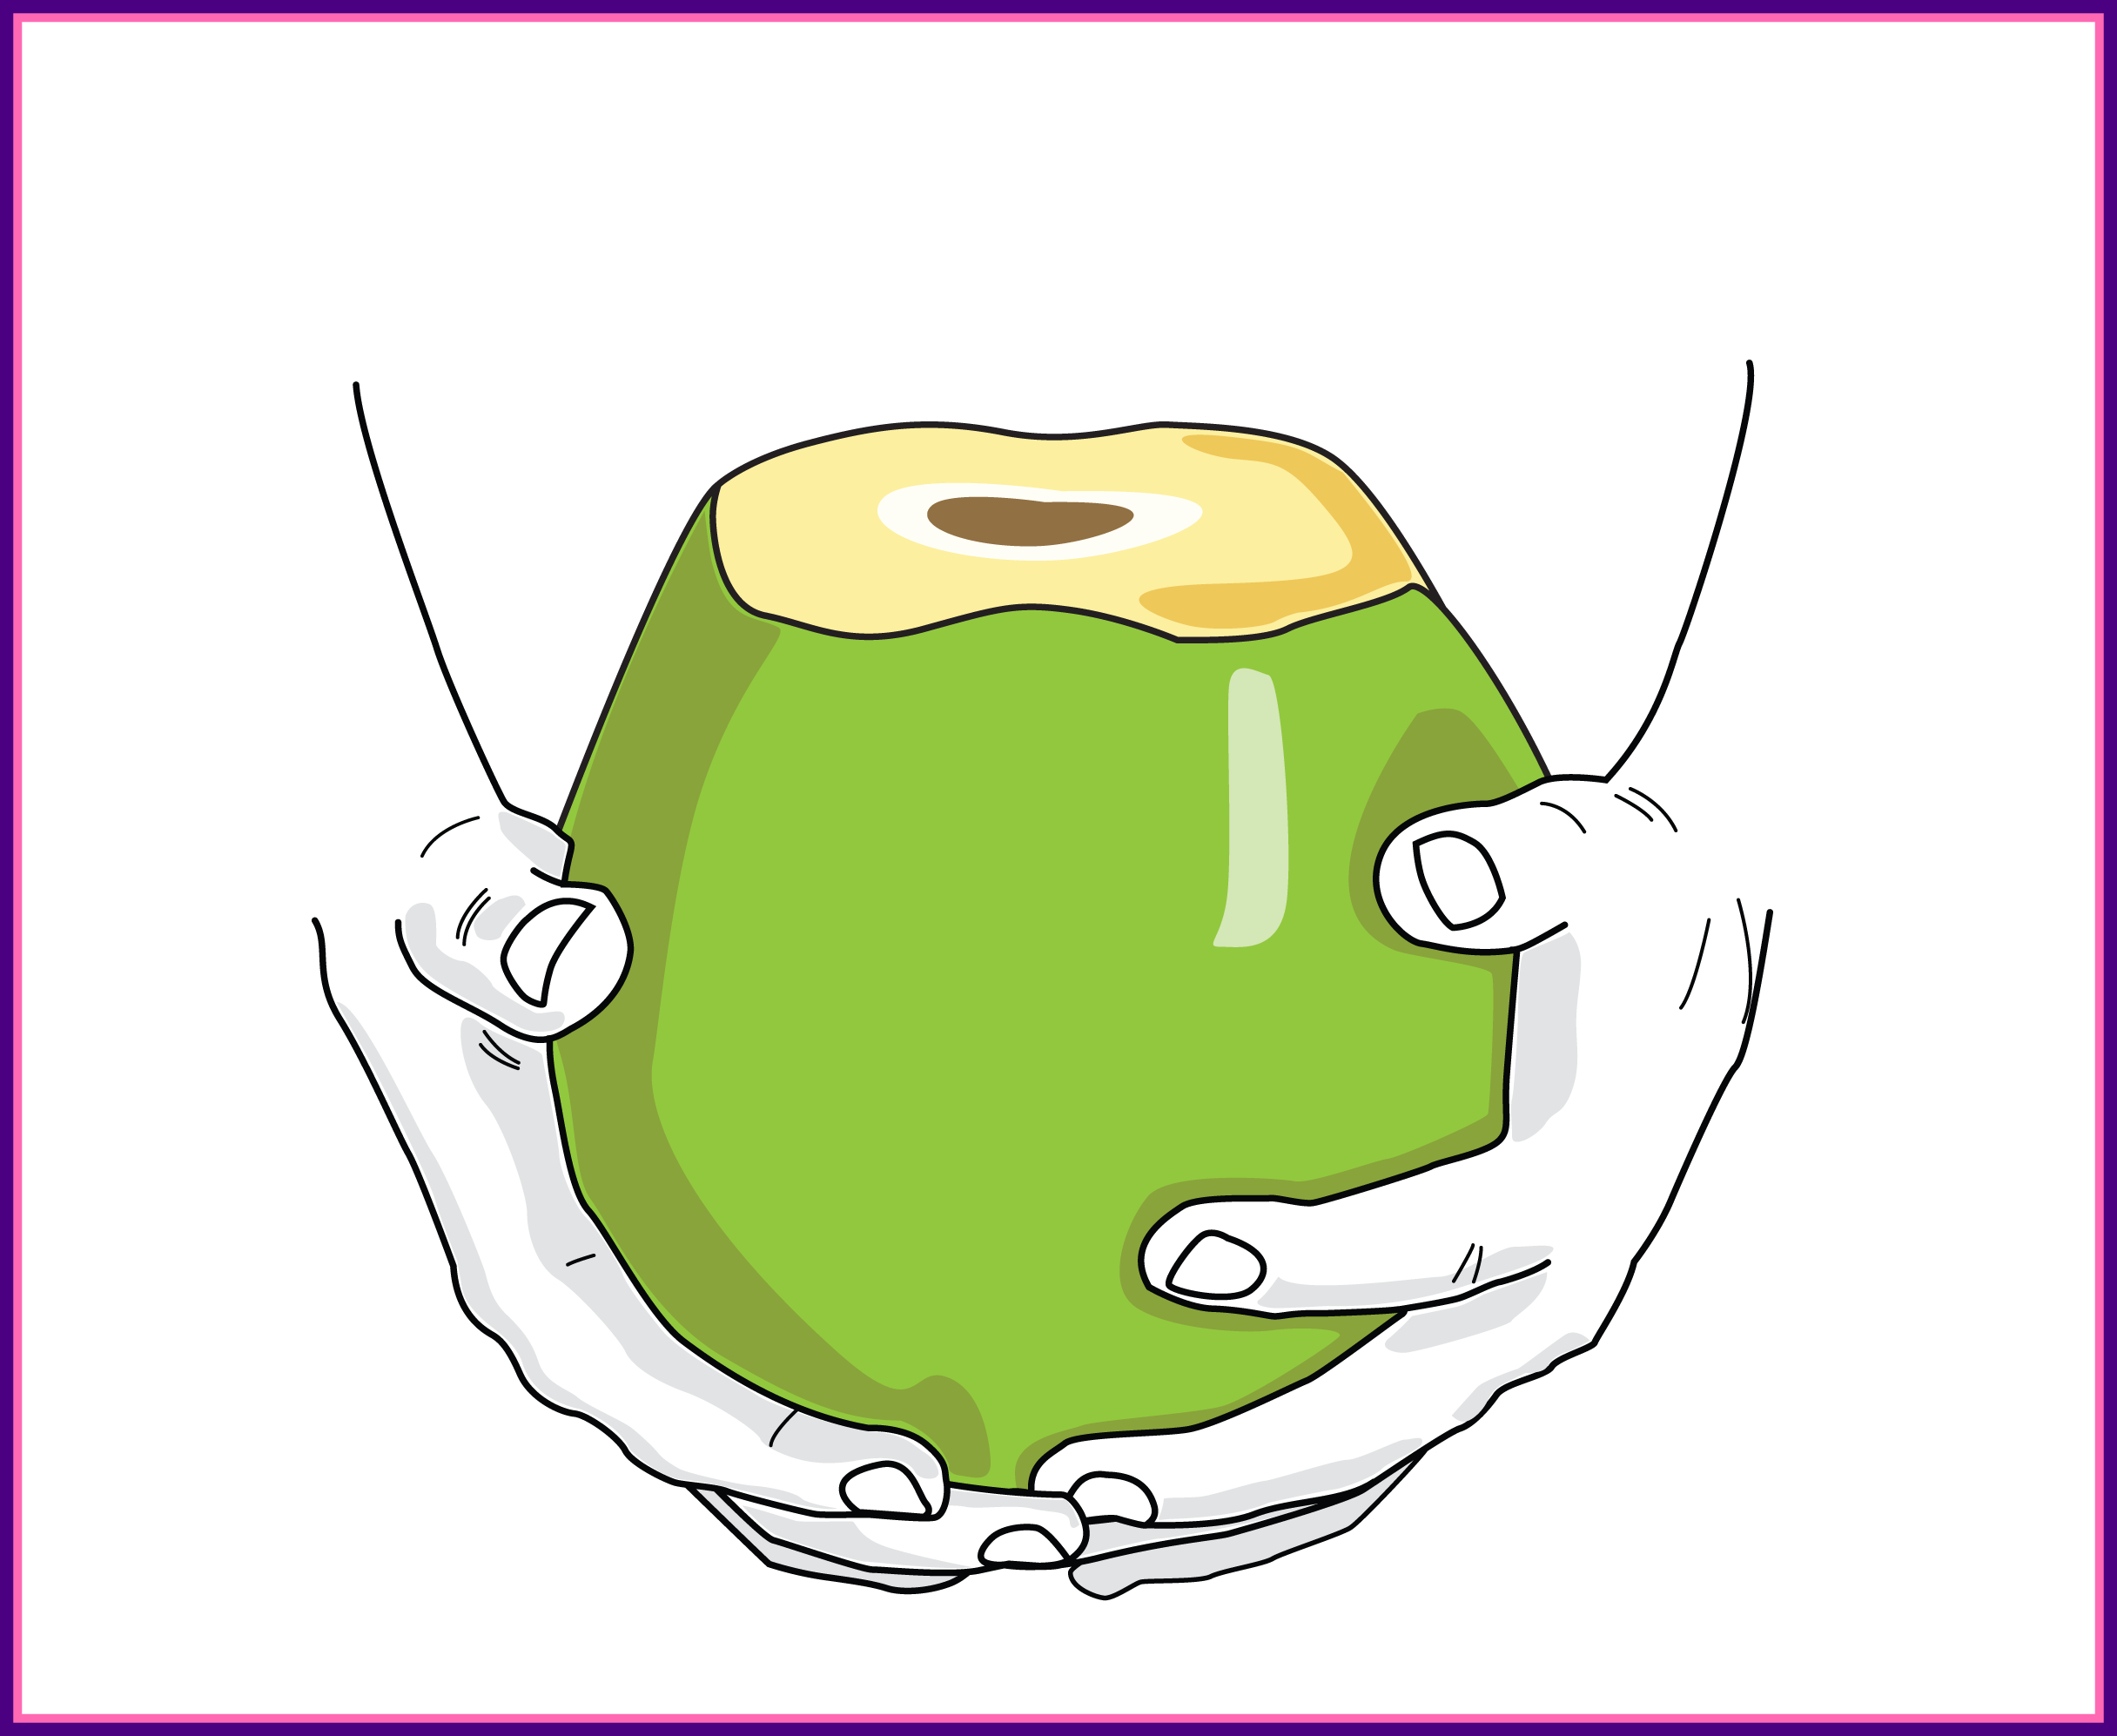 Marvelous day seven is. Coconut clipart cute